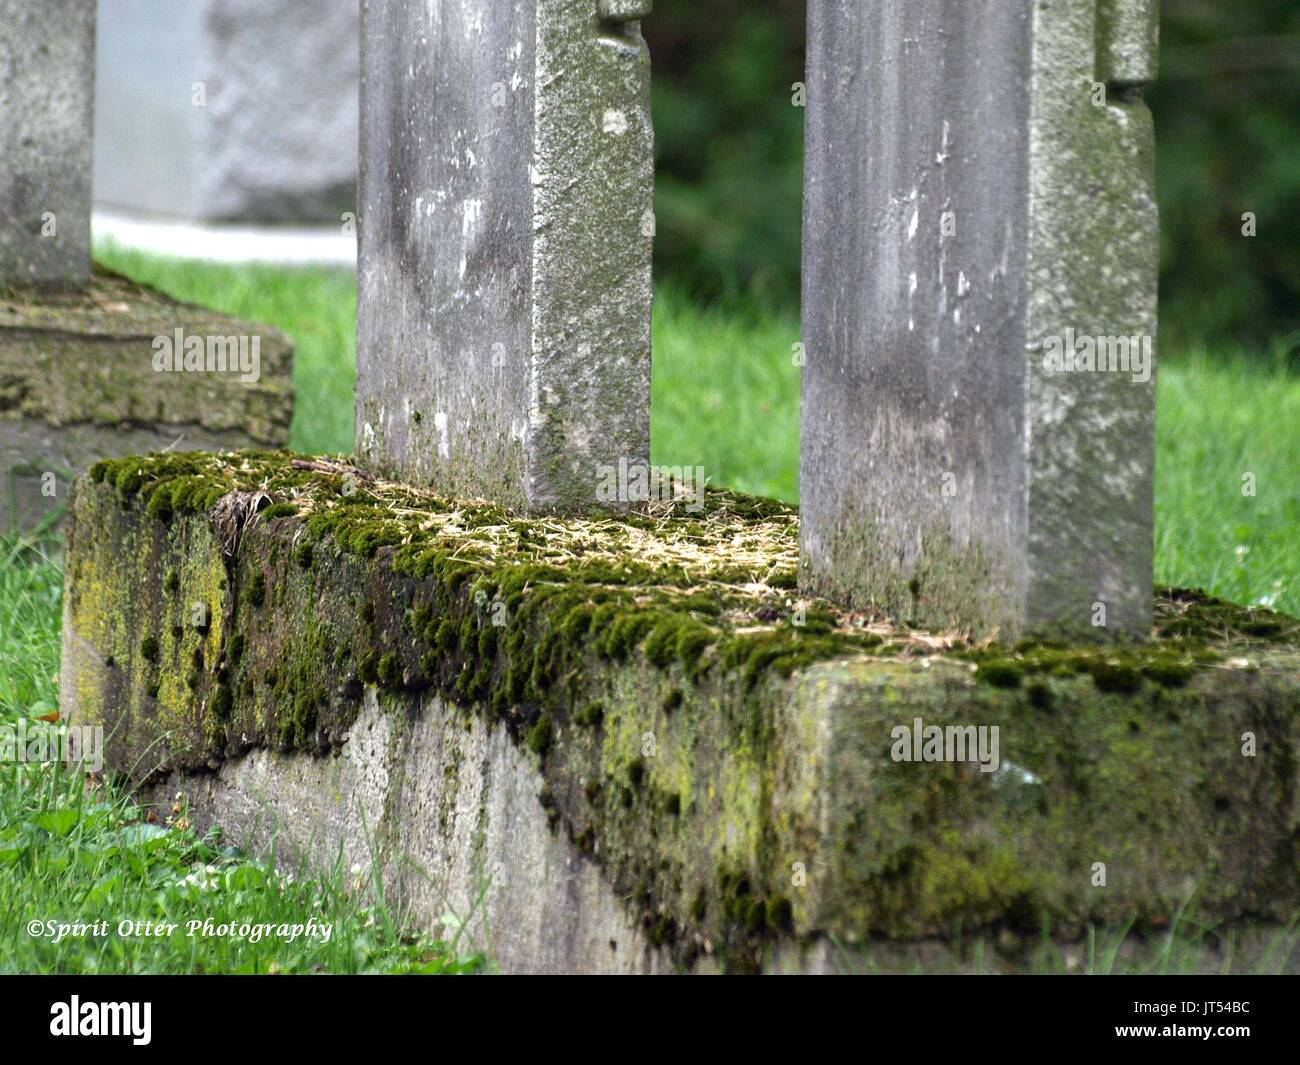 A family resting place for a husband and wife, no names shown - Stock Image